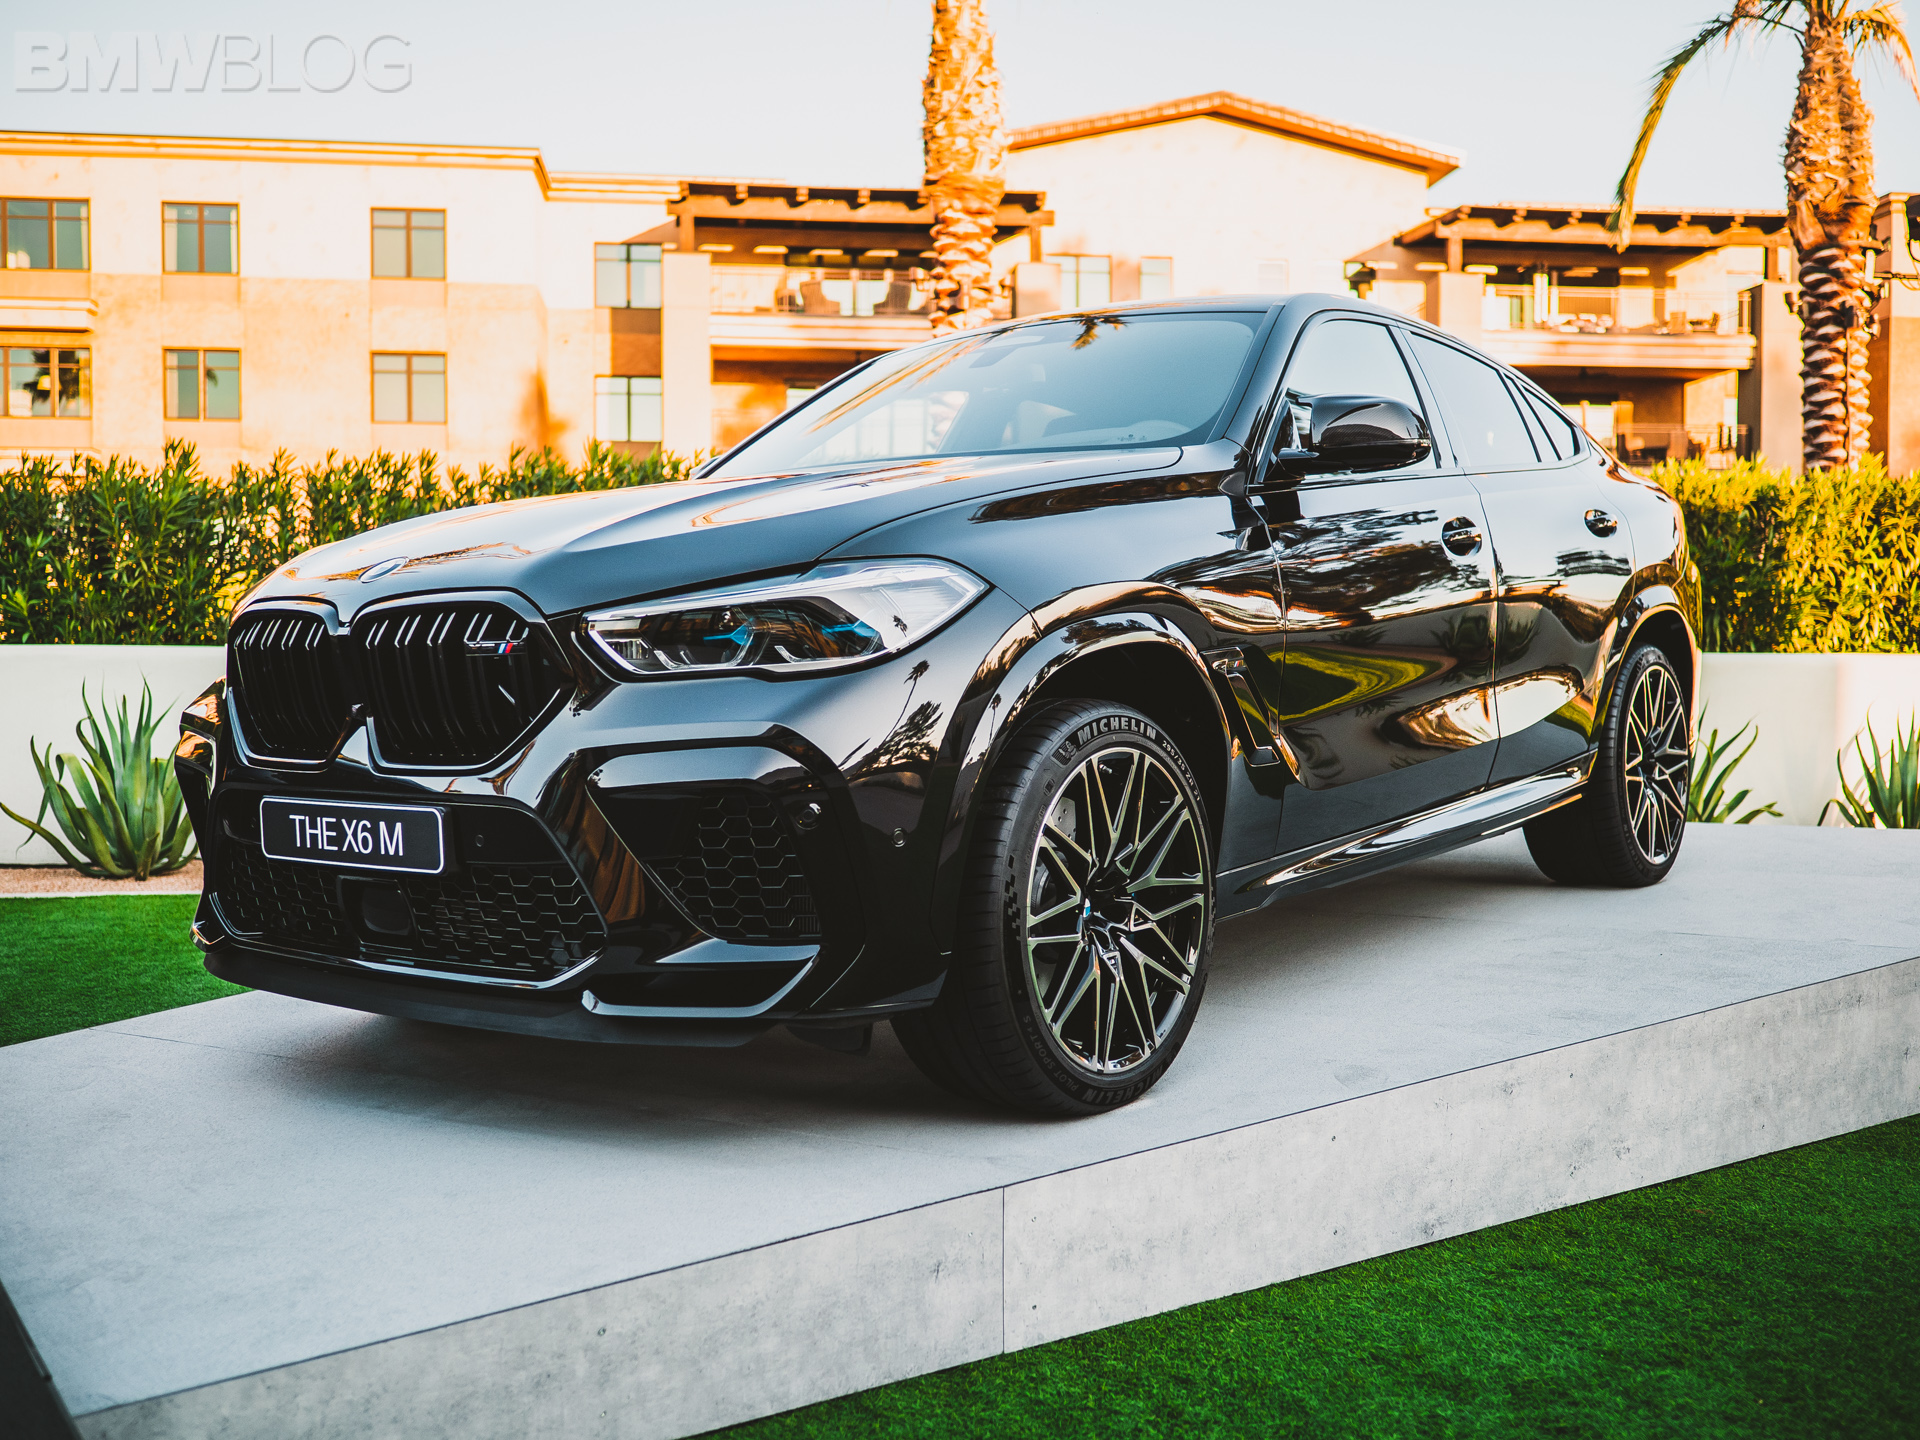 2020 BMW X6 M Competition in Carbon Black Metallic - EXCLUSIVE PHOTOS